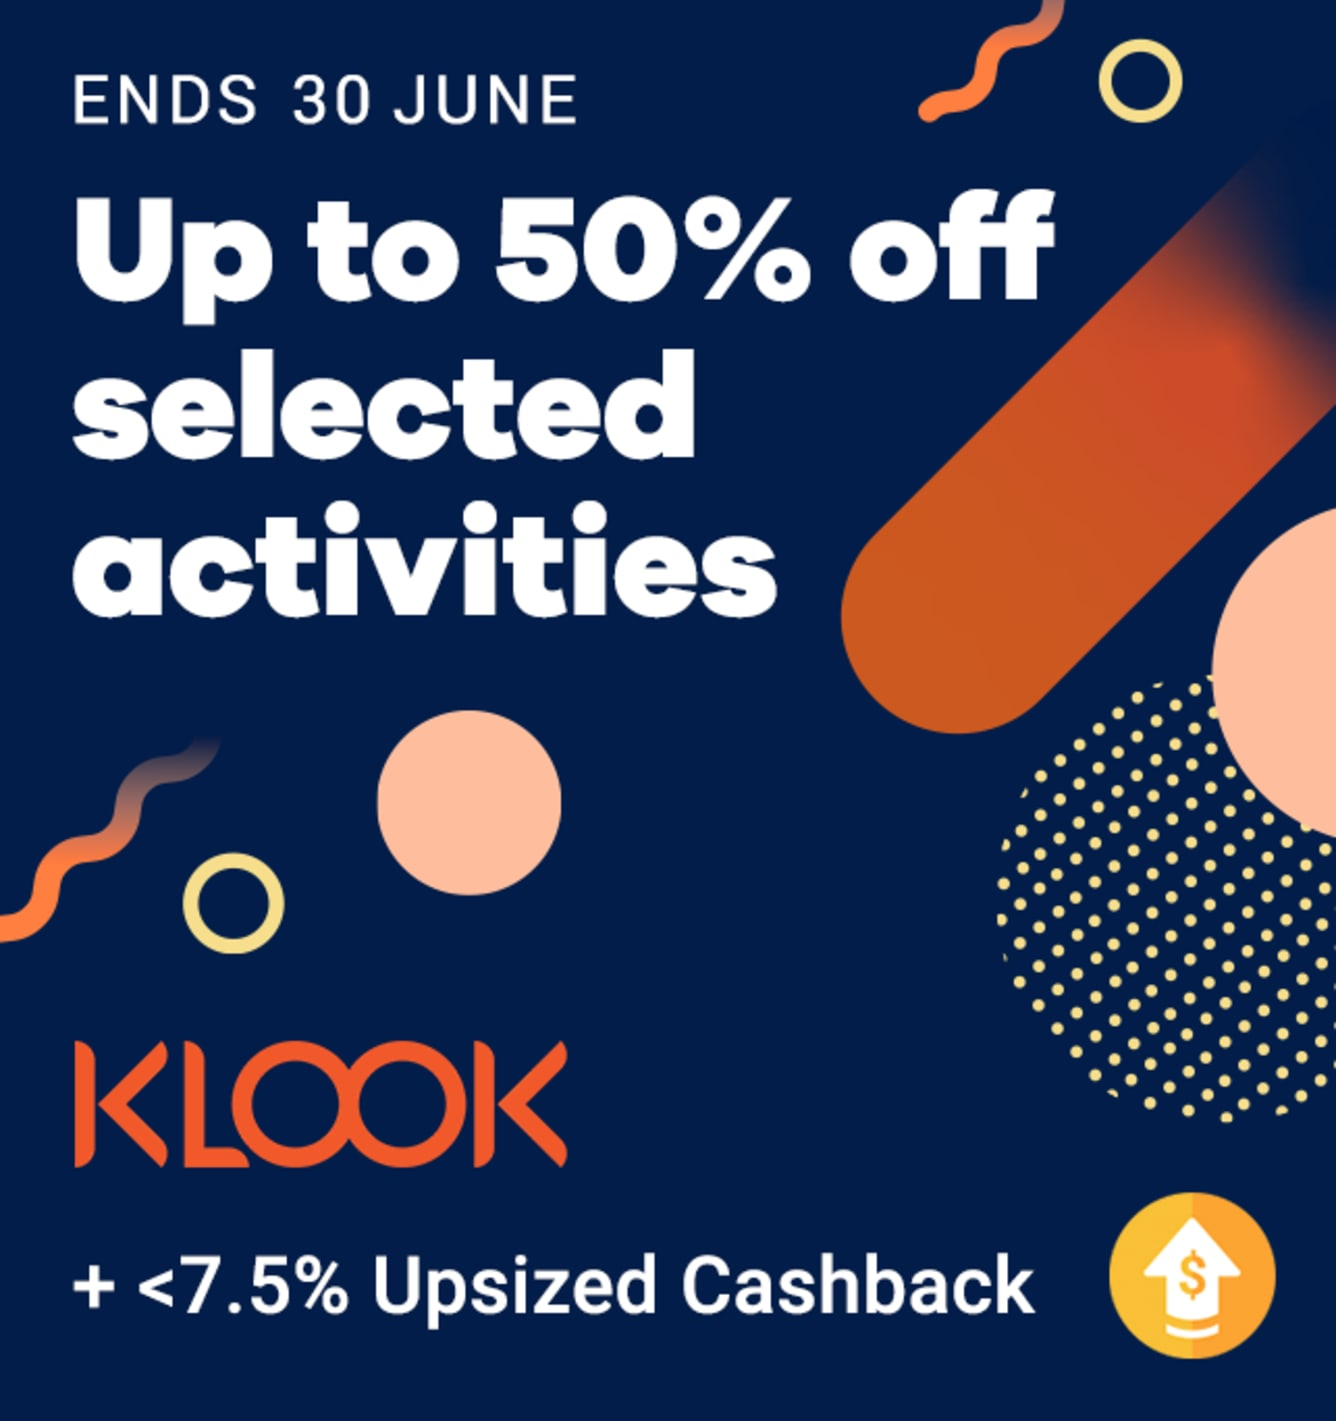 Celebrate Klook's Birthday with Up to 7.5% Upsized Cashback